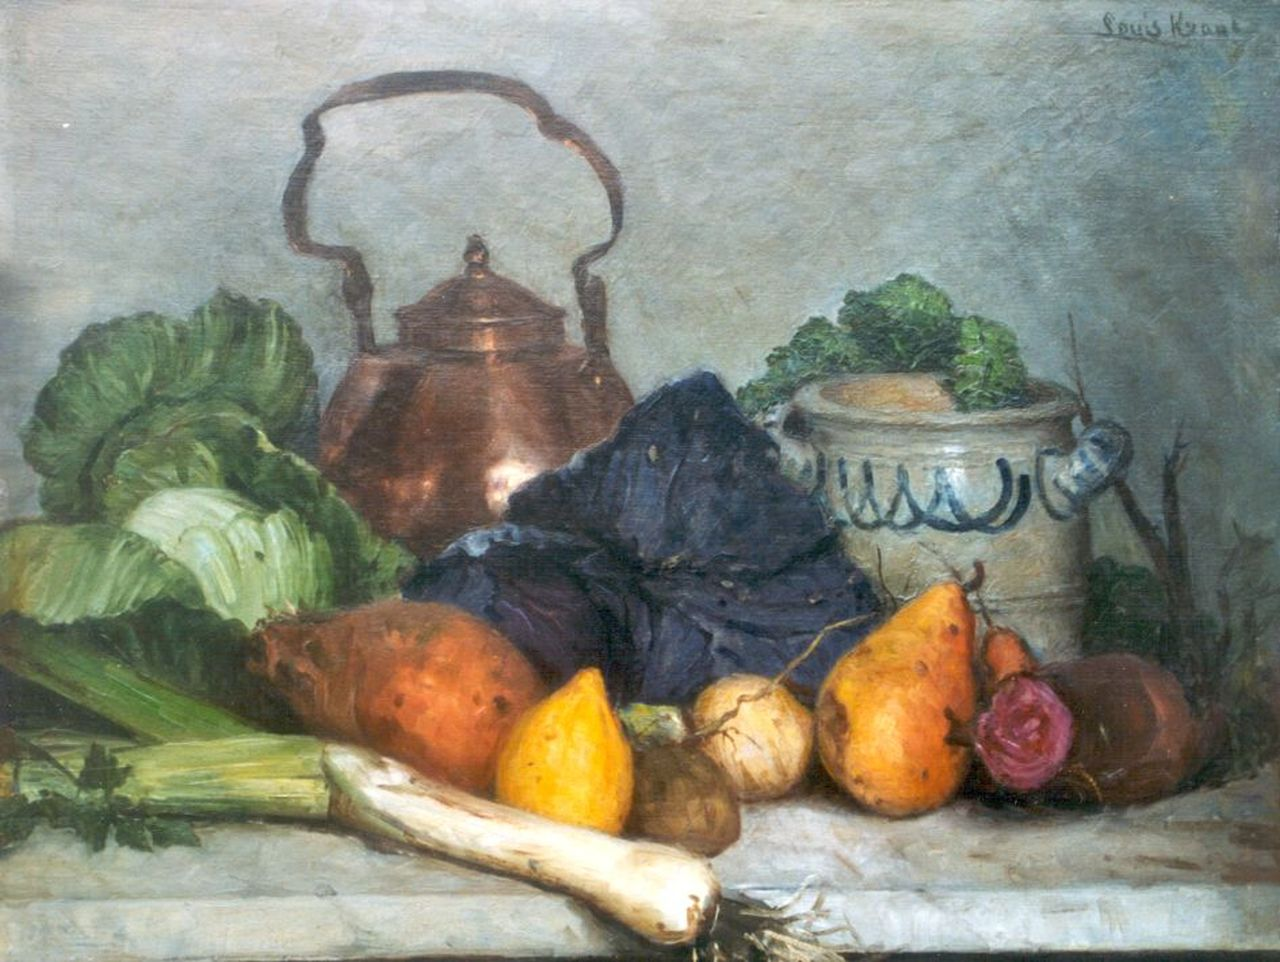 Louis Marie Krans | A still life with vegetables, oil on board, 38.1 x 48.2 cm, signed u.r.